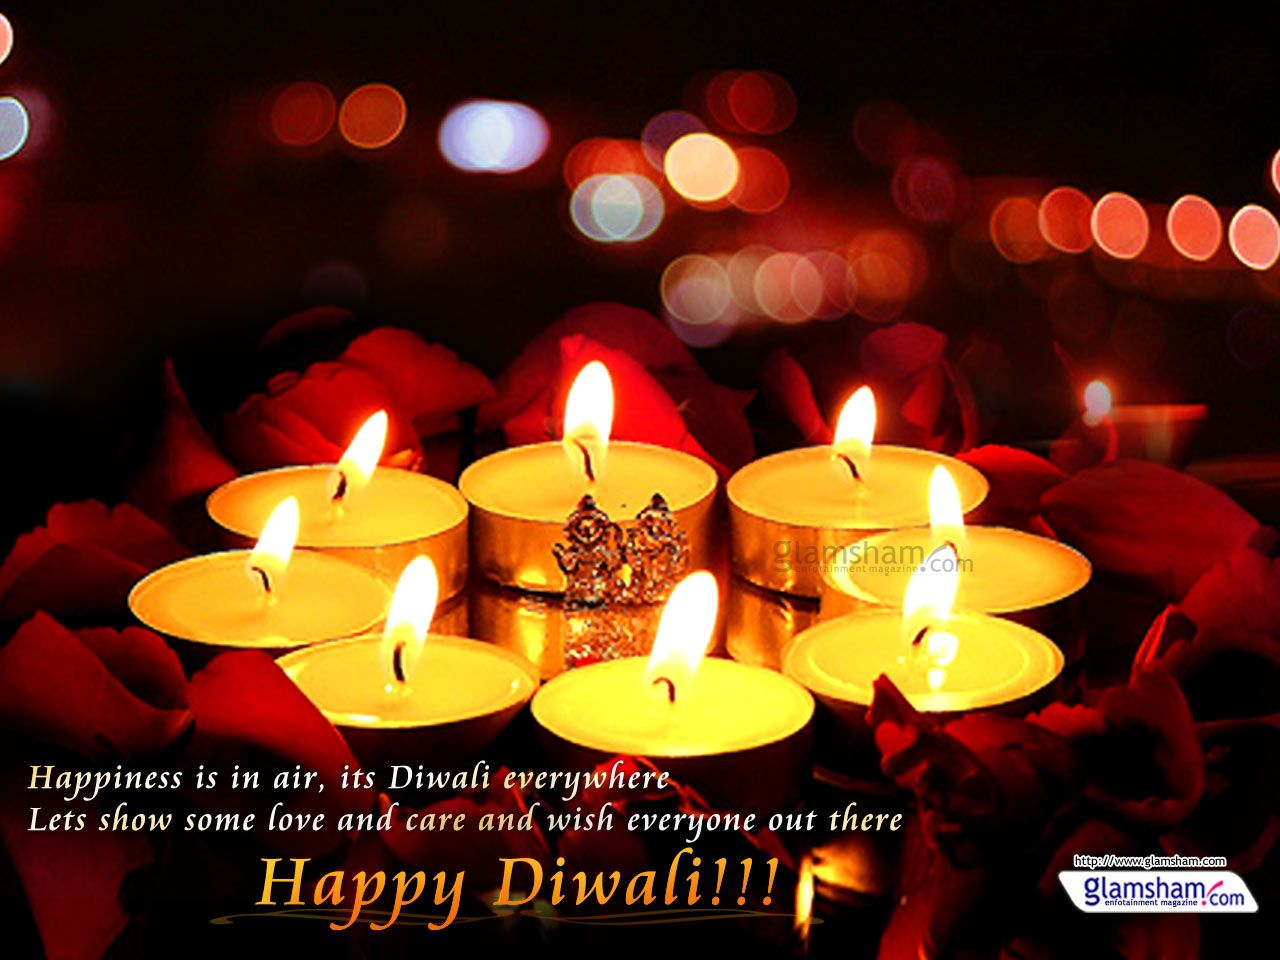 Top Wallpaper Love Diwali - 838bfc6a62df88c5f286d0a0f4e4a039  Image_971099.jpg